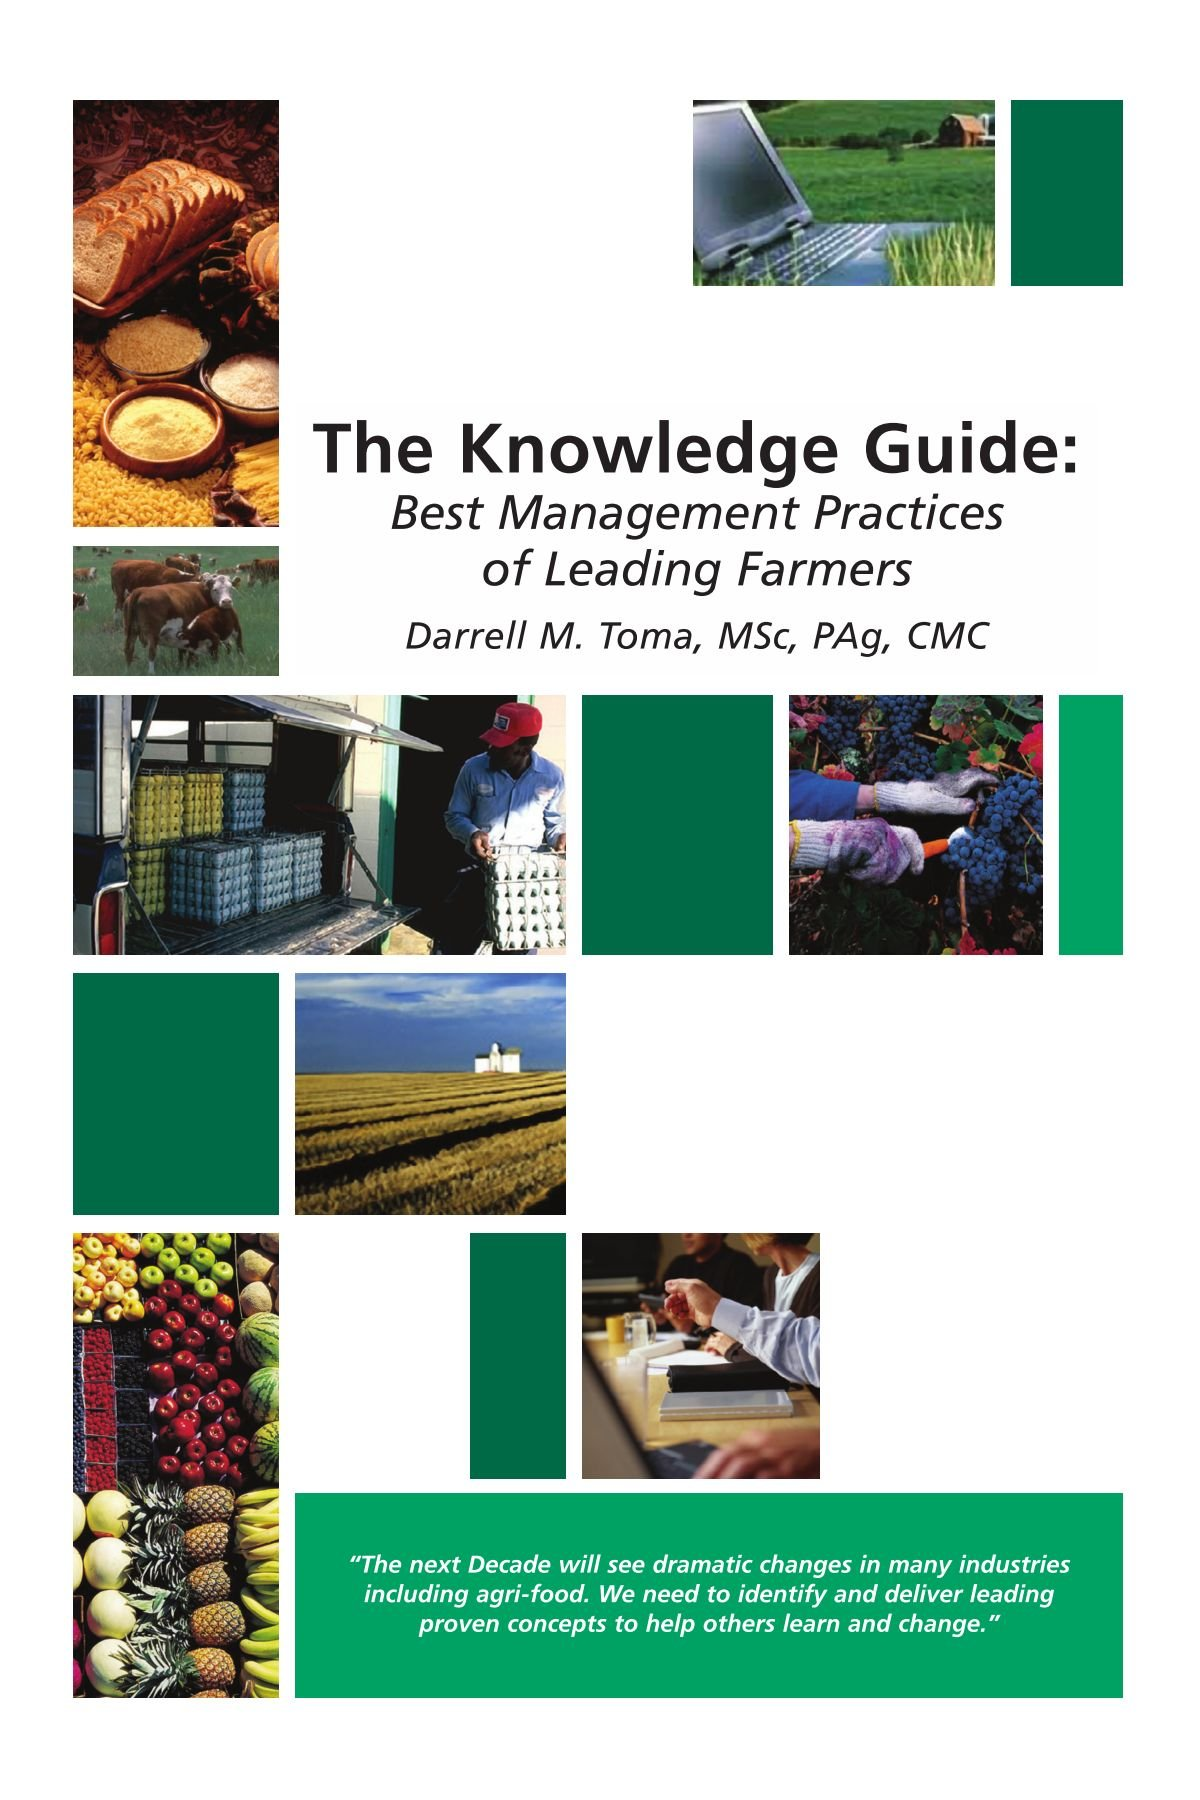 The Knowledge Guide: Best Management Practices of Leading Farmers PDF